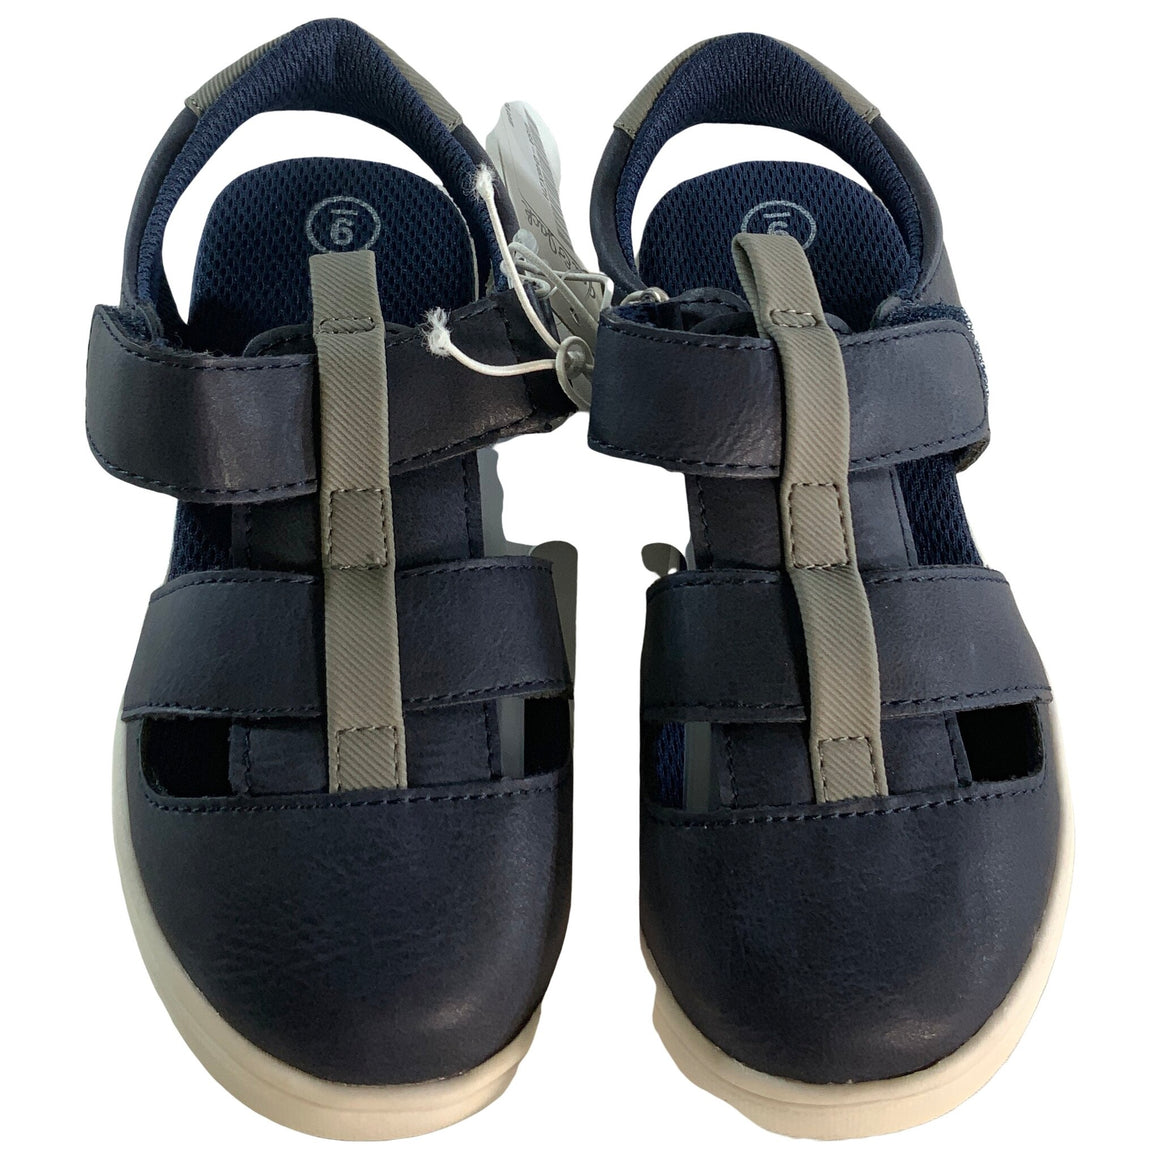 Toddler Boys' London Fisherman Sandals - Navy - Cat & Jack™